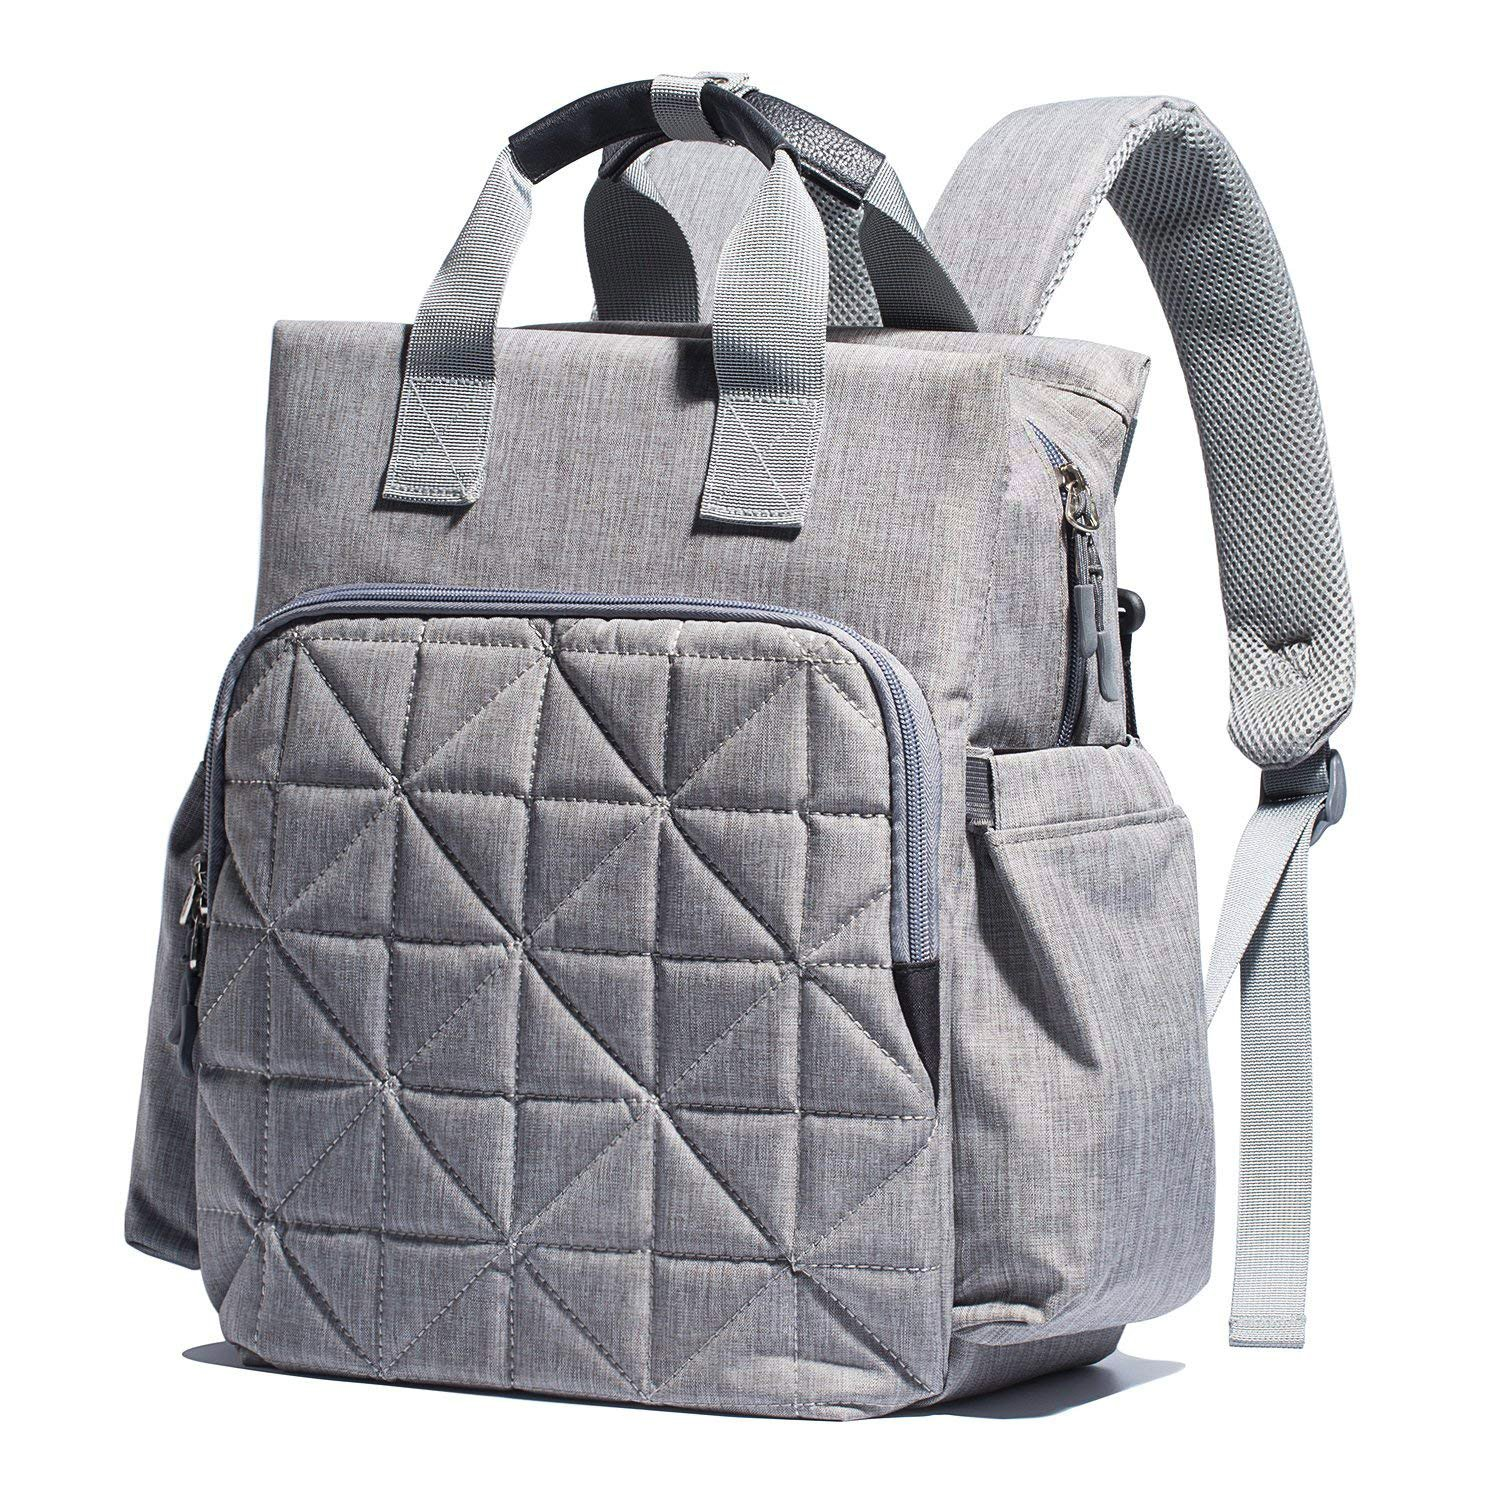 SoHo Kenneth Diaper Backpack 6Pc Tote Bag, Gray